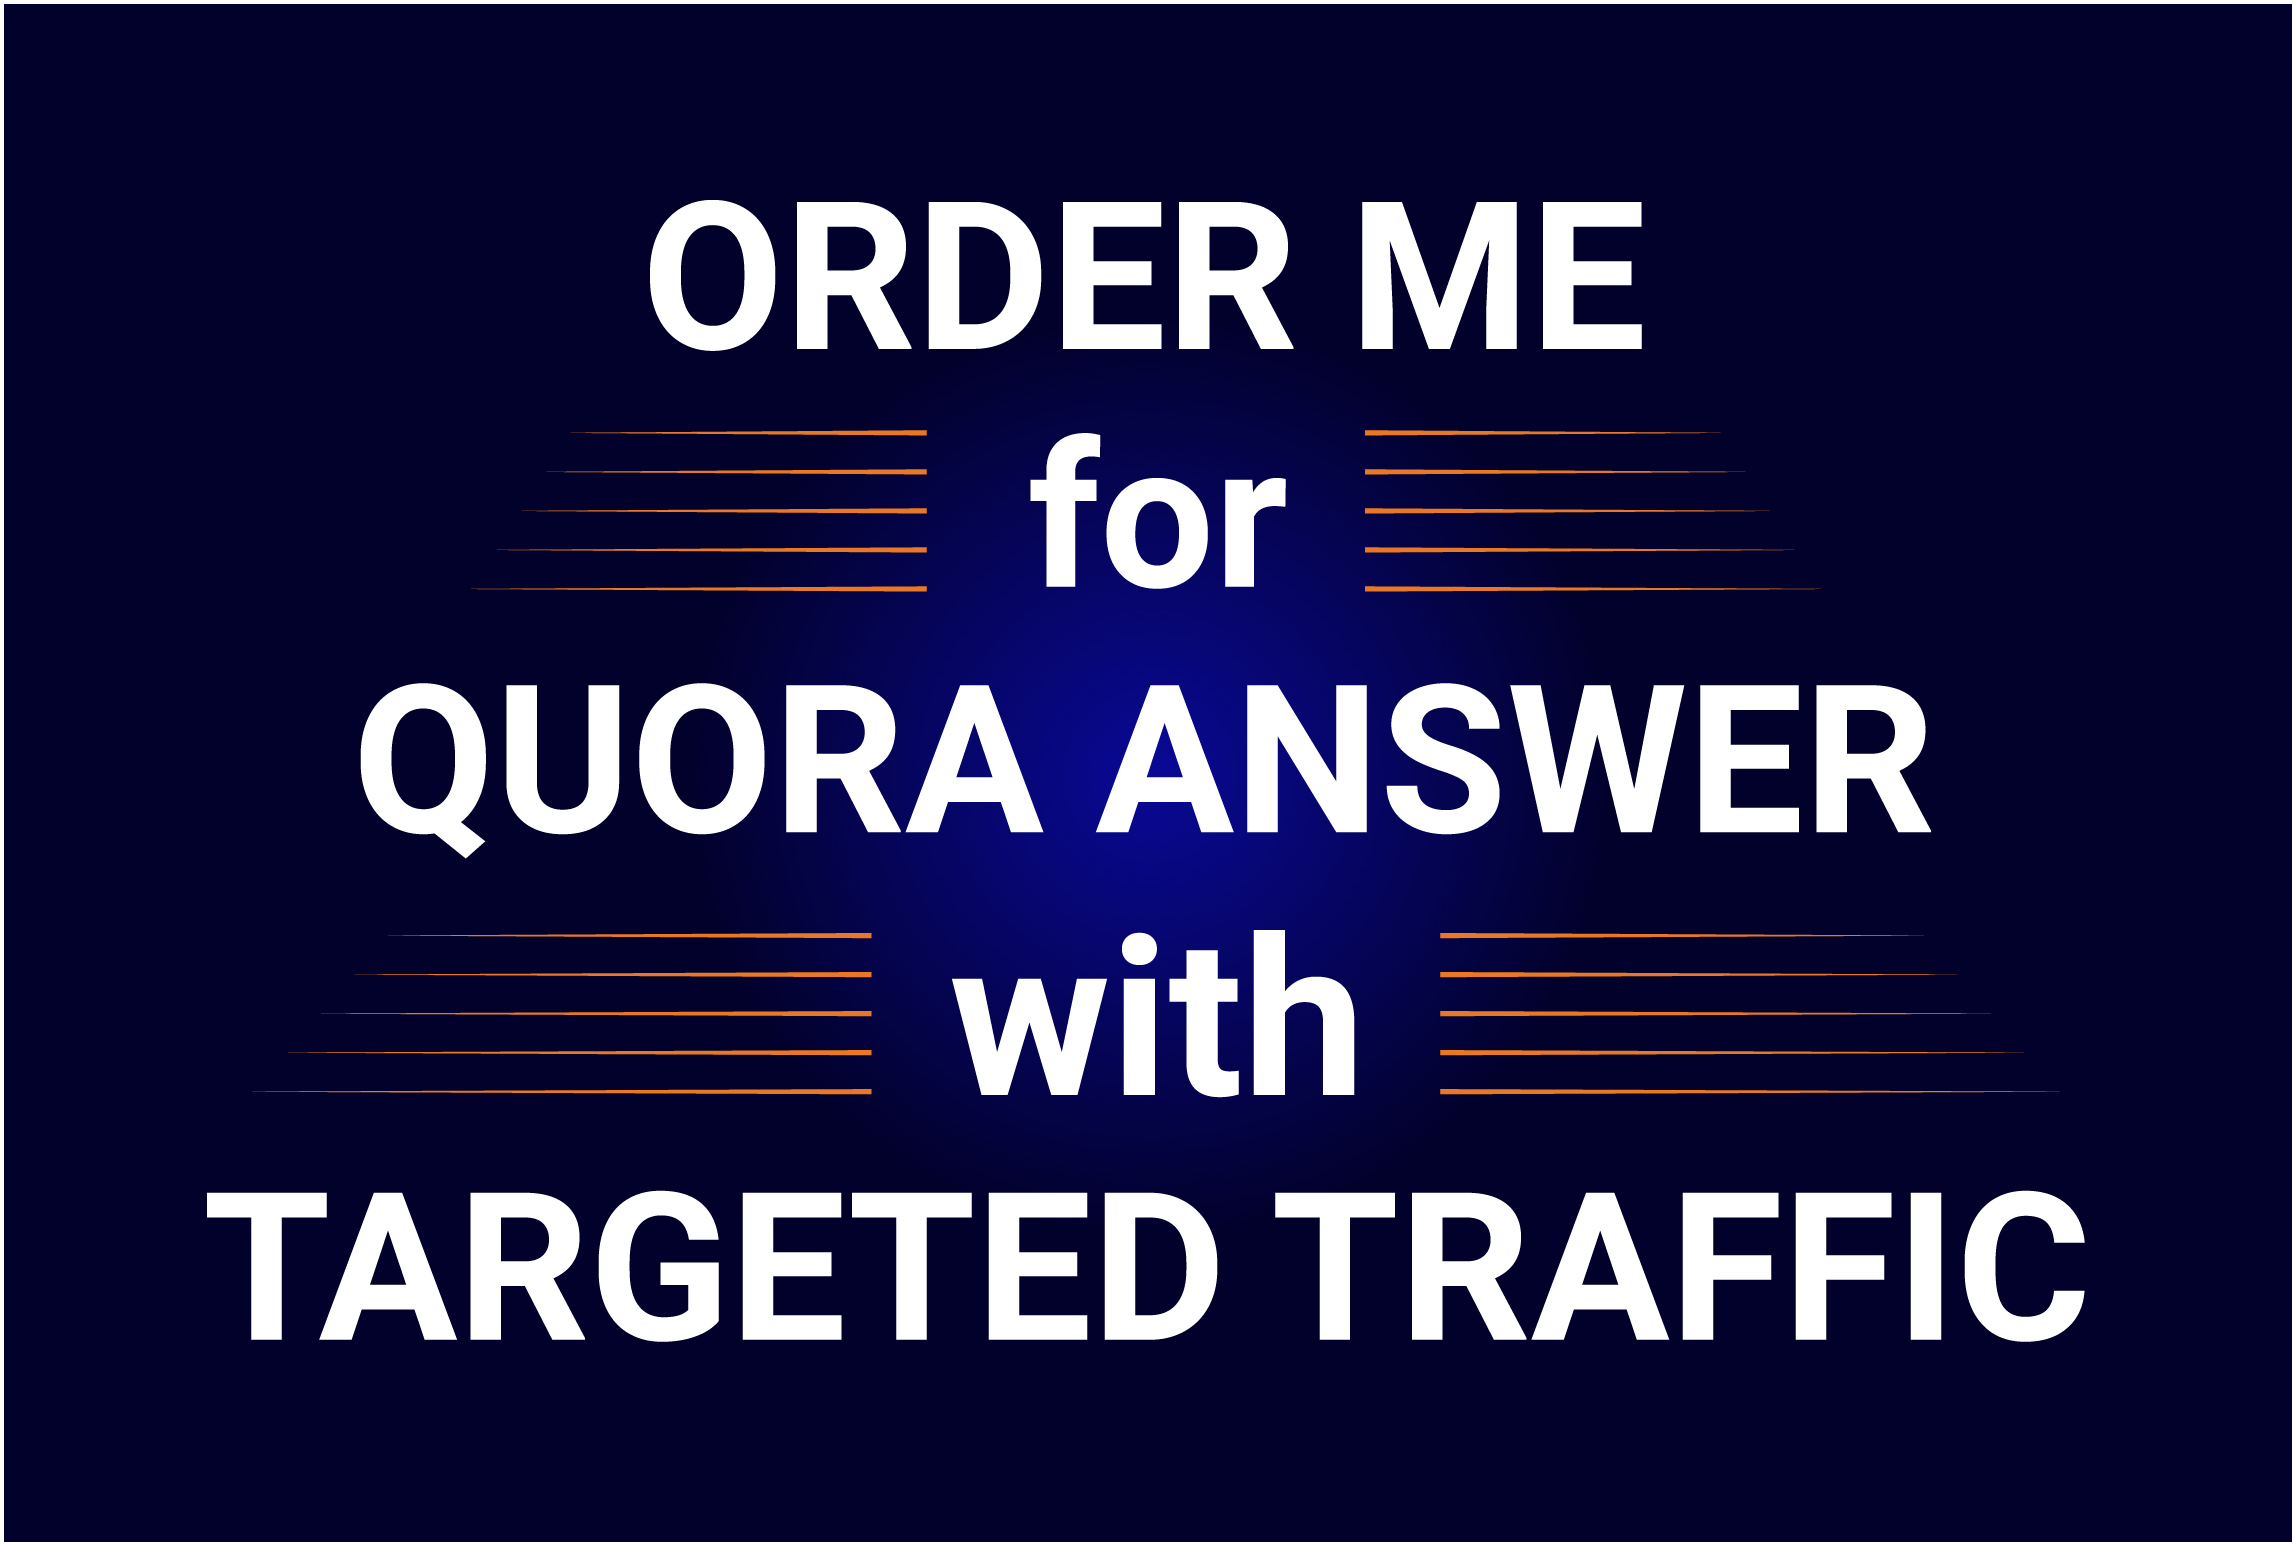 Order Me for 5 Quora Answer with Targeted Traffic